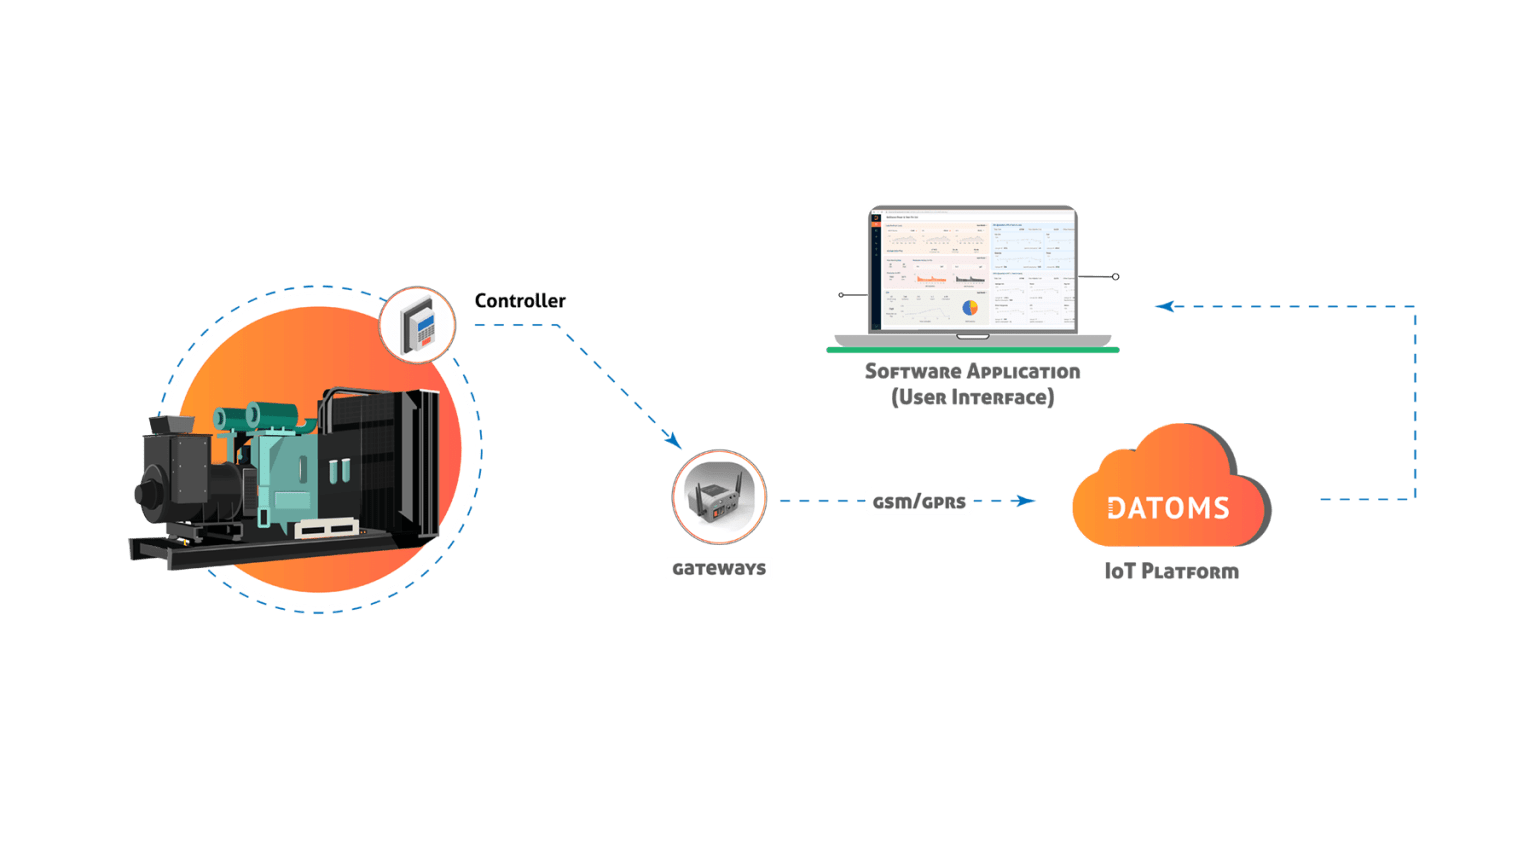 DATOMS-DG Monitoring-Architecture